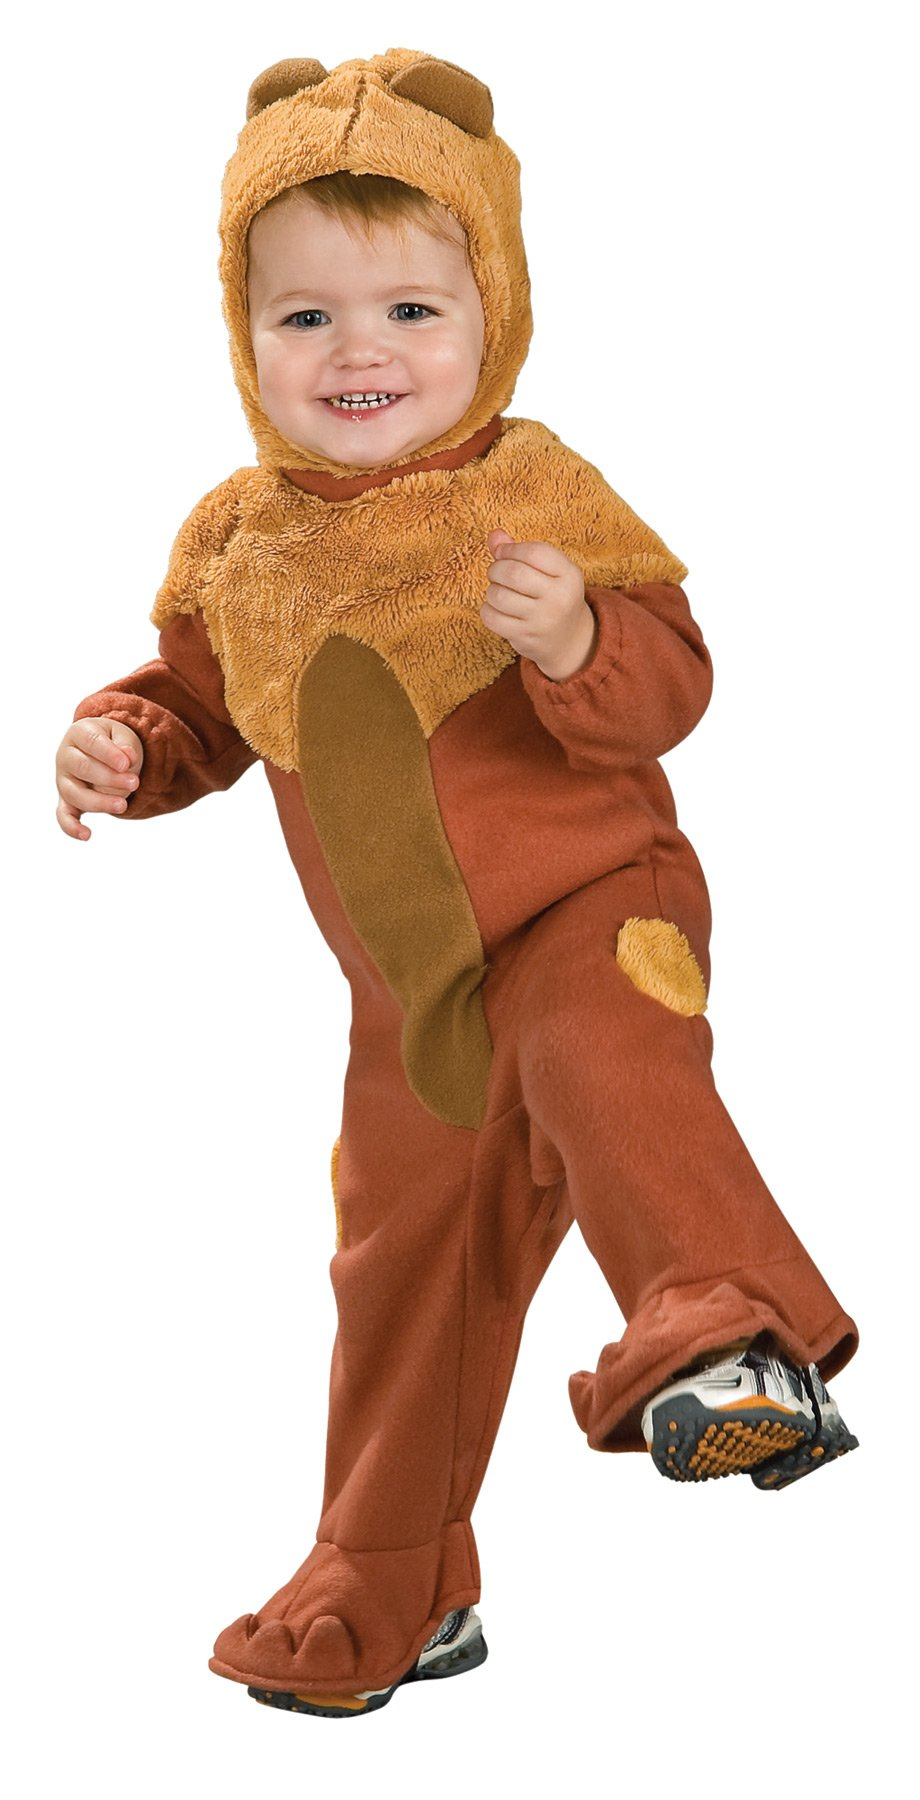 Cowardly Lion Costume Baby Costume 6-12 mnths